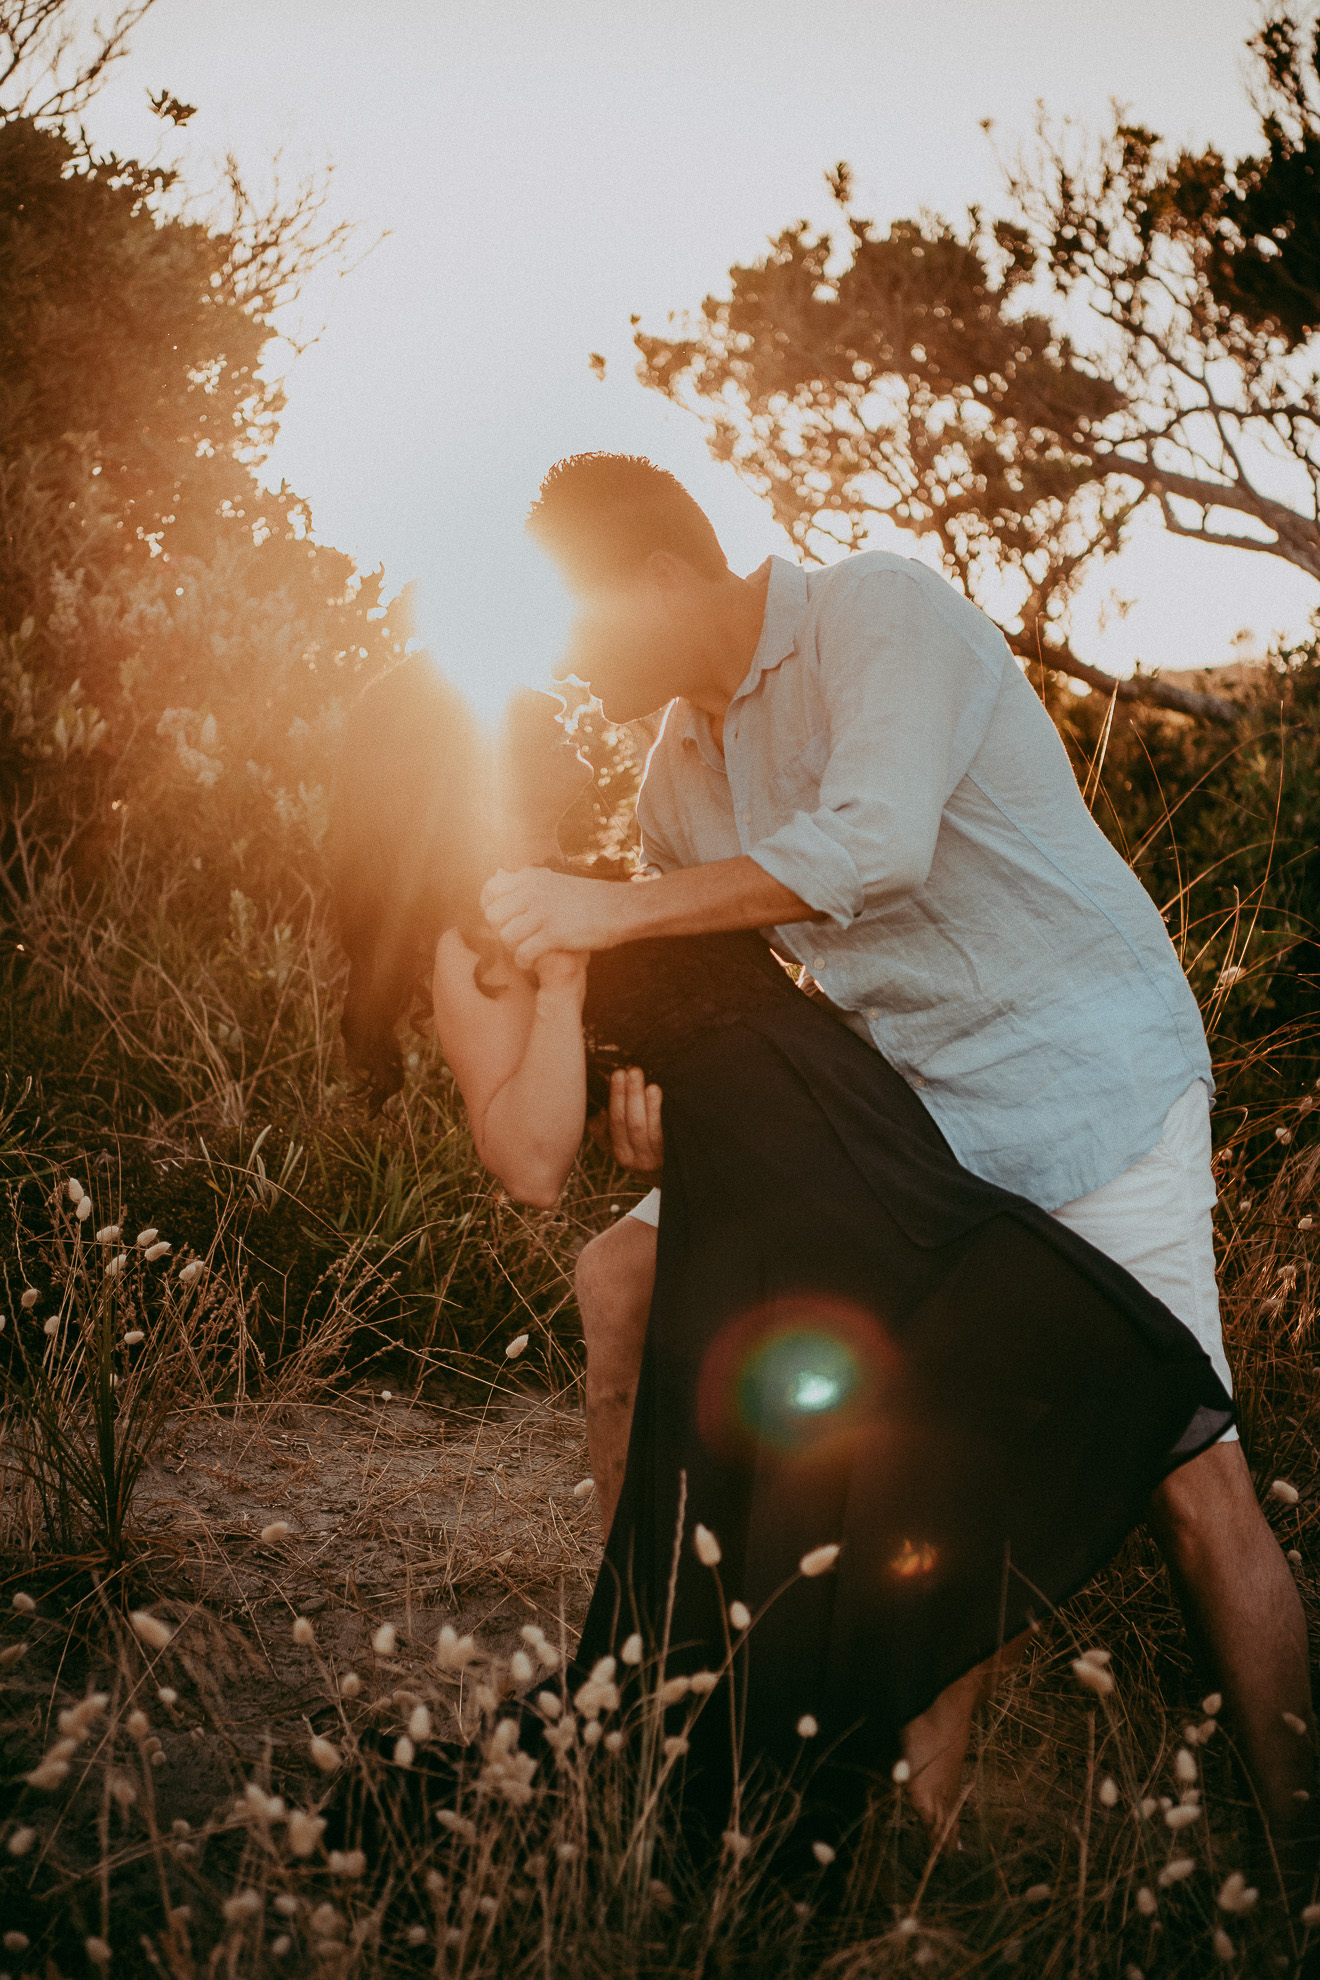 couple engagement pre-wedding hug at sunset beach hills with sun flare | Auckland wedding photographers